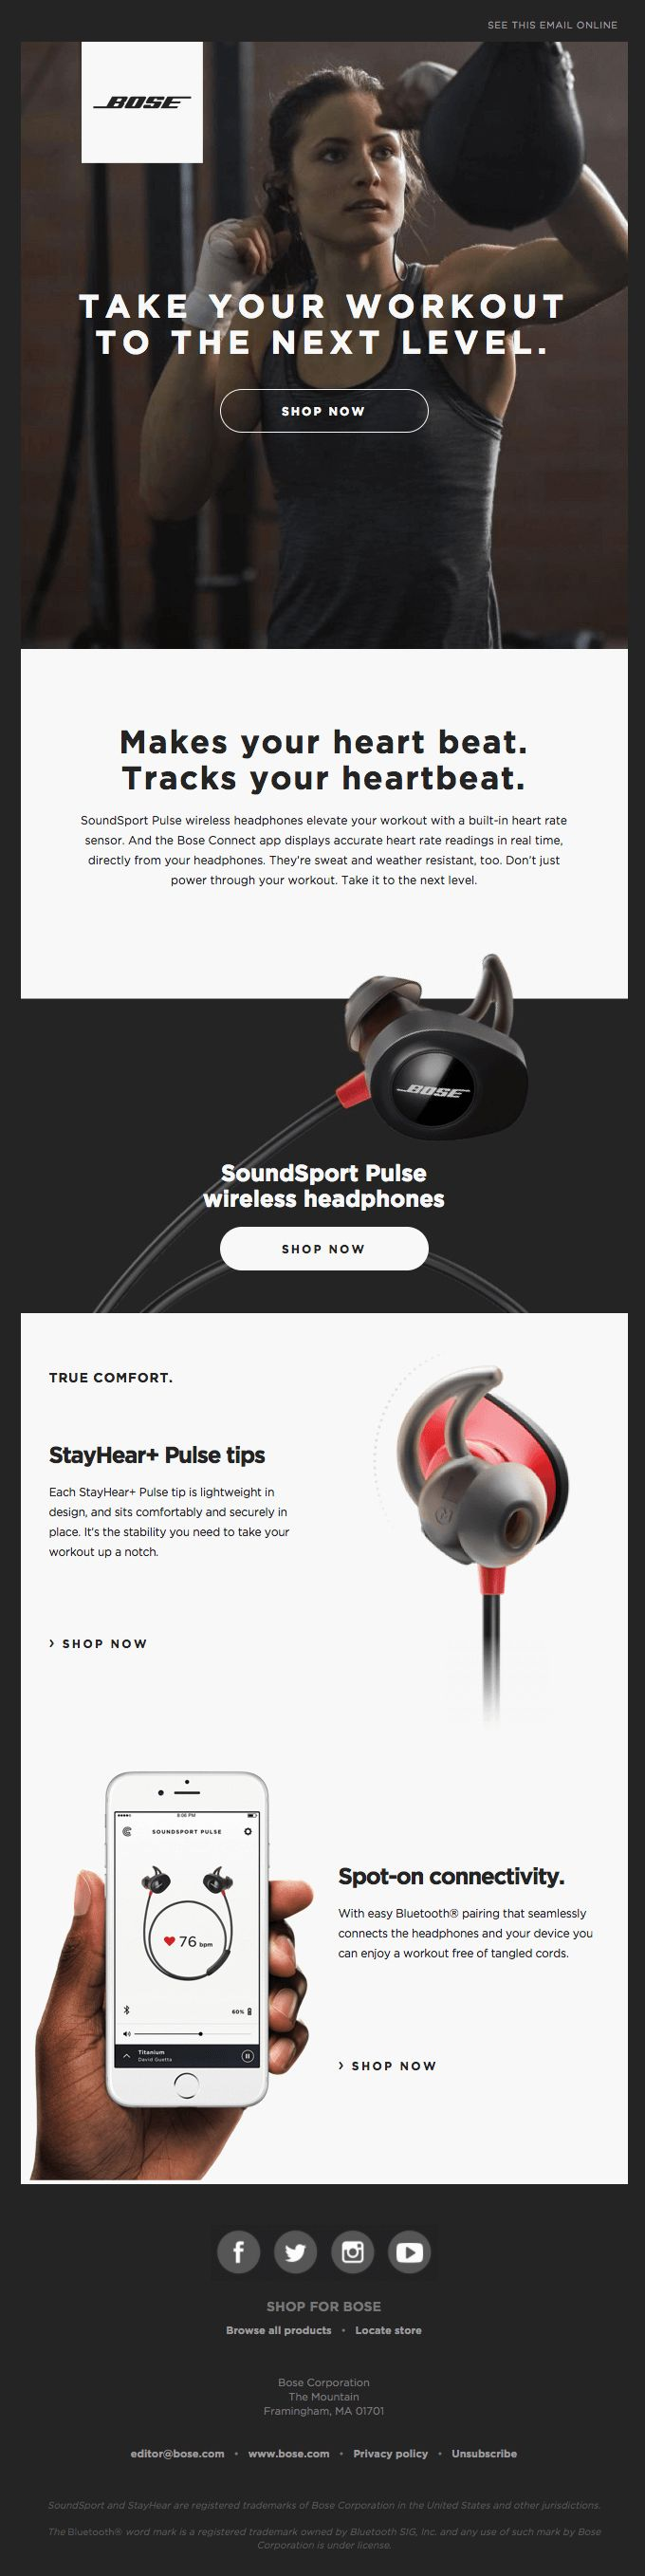 Your Best Workout Starts Now | SoundSport Pulse - Really Good Emails